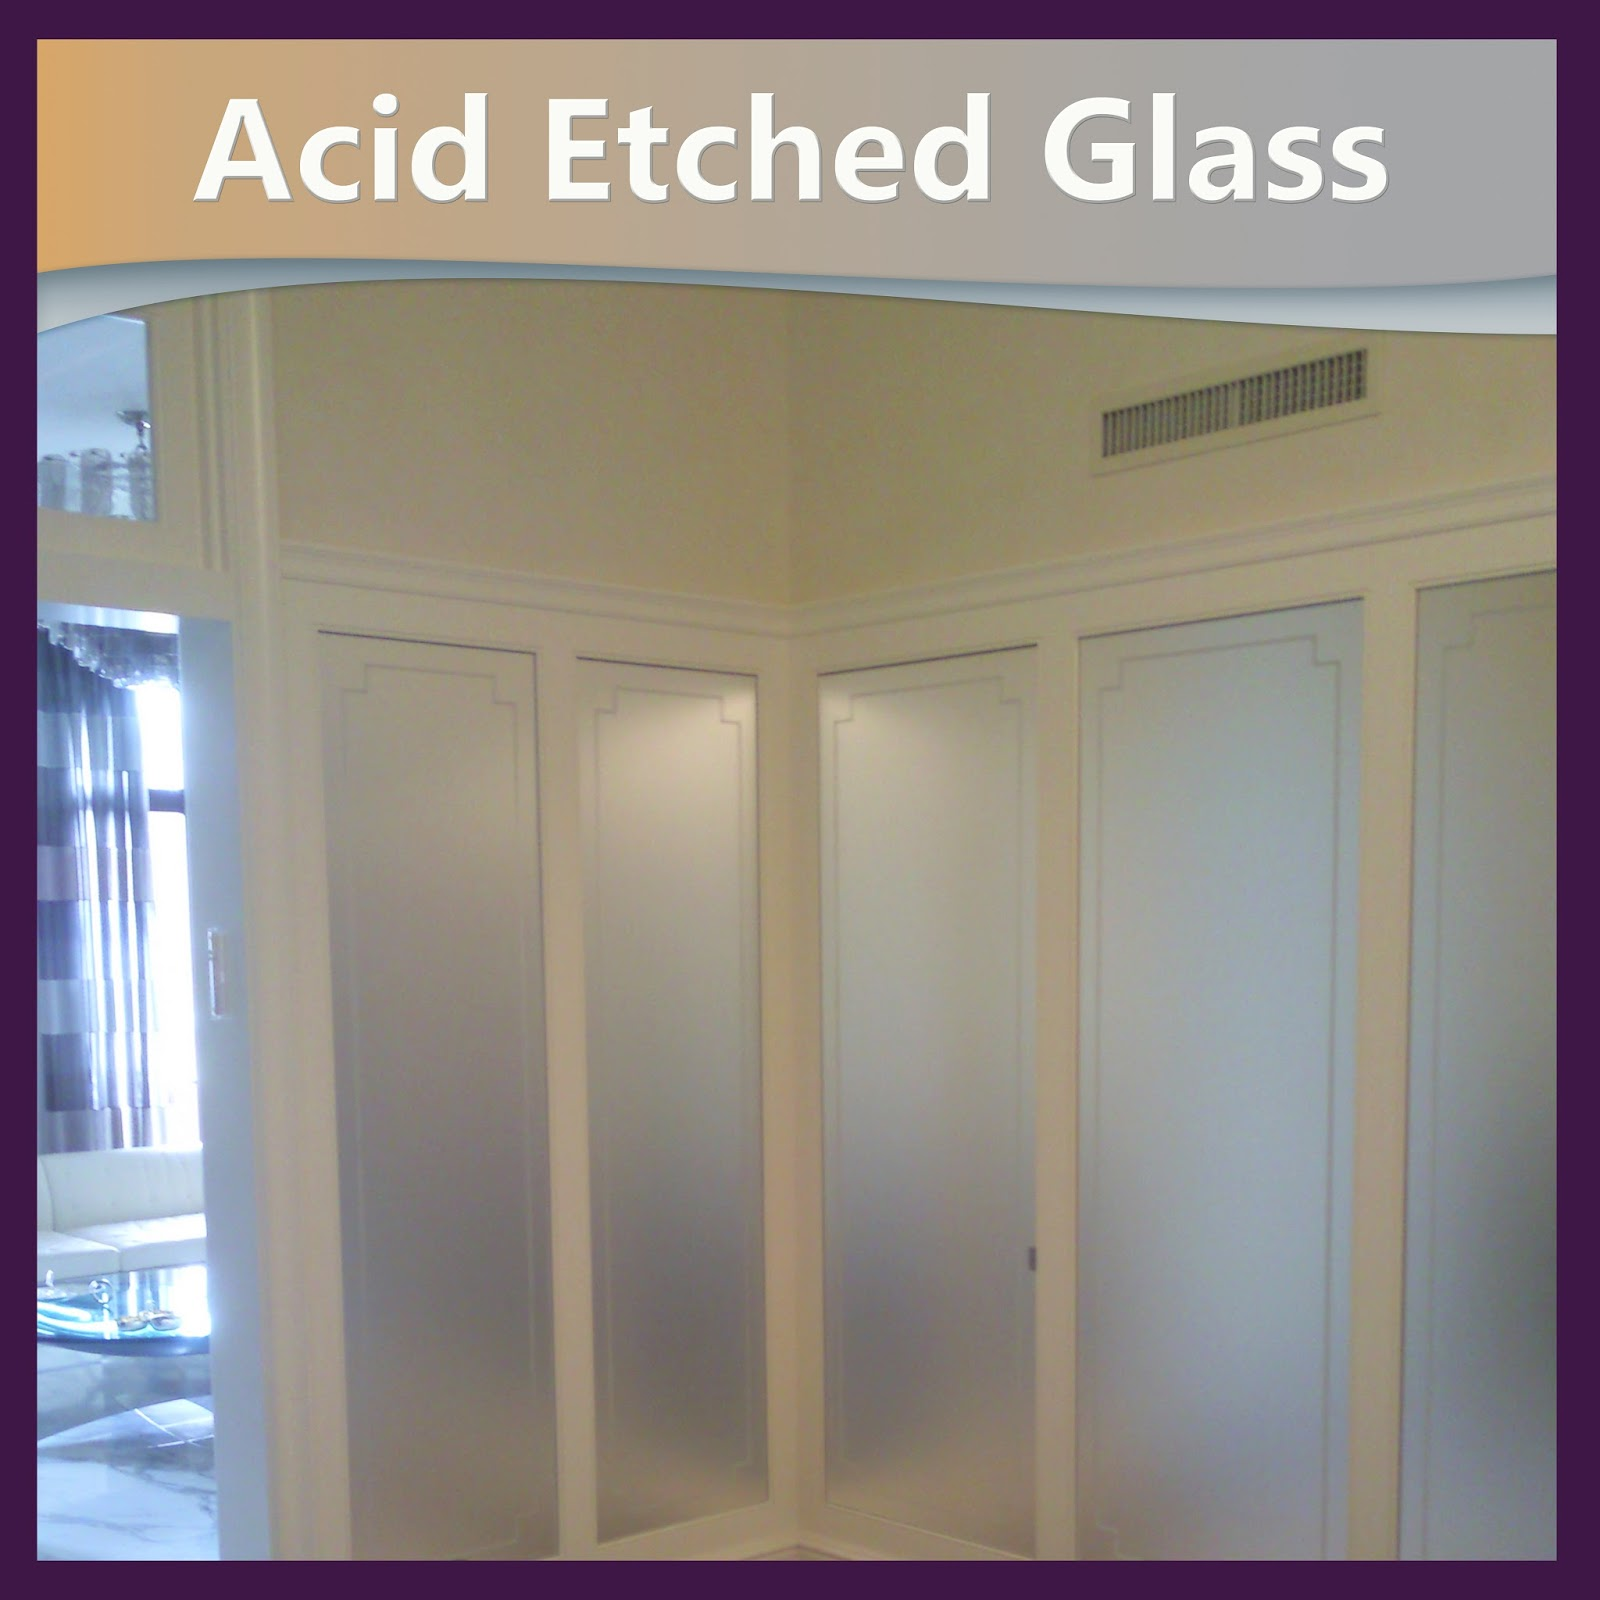 Acid Etched Glass Laminatedglassnyc